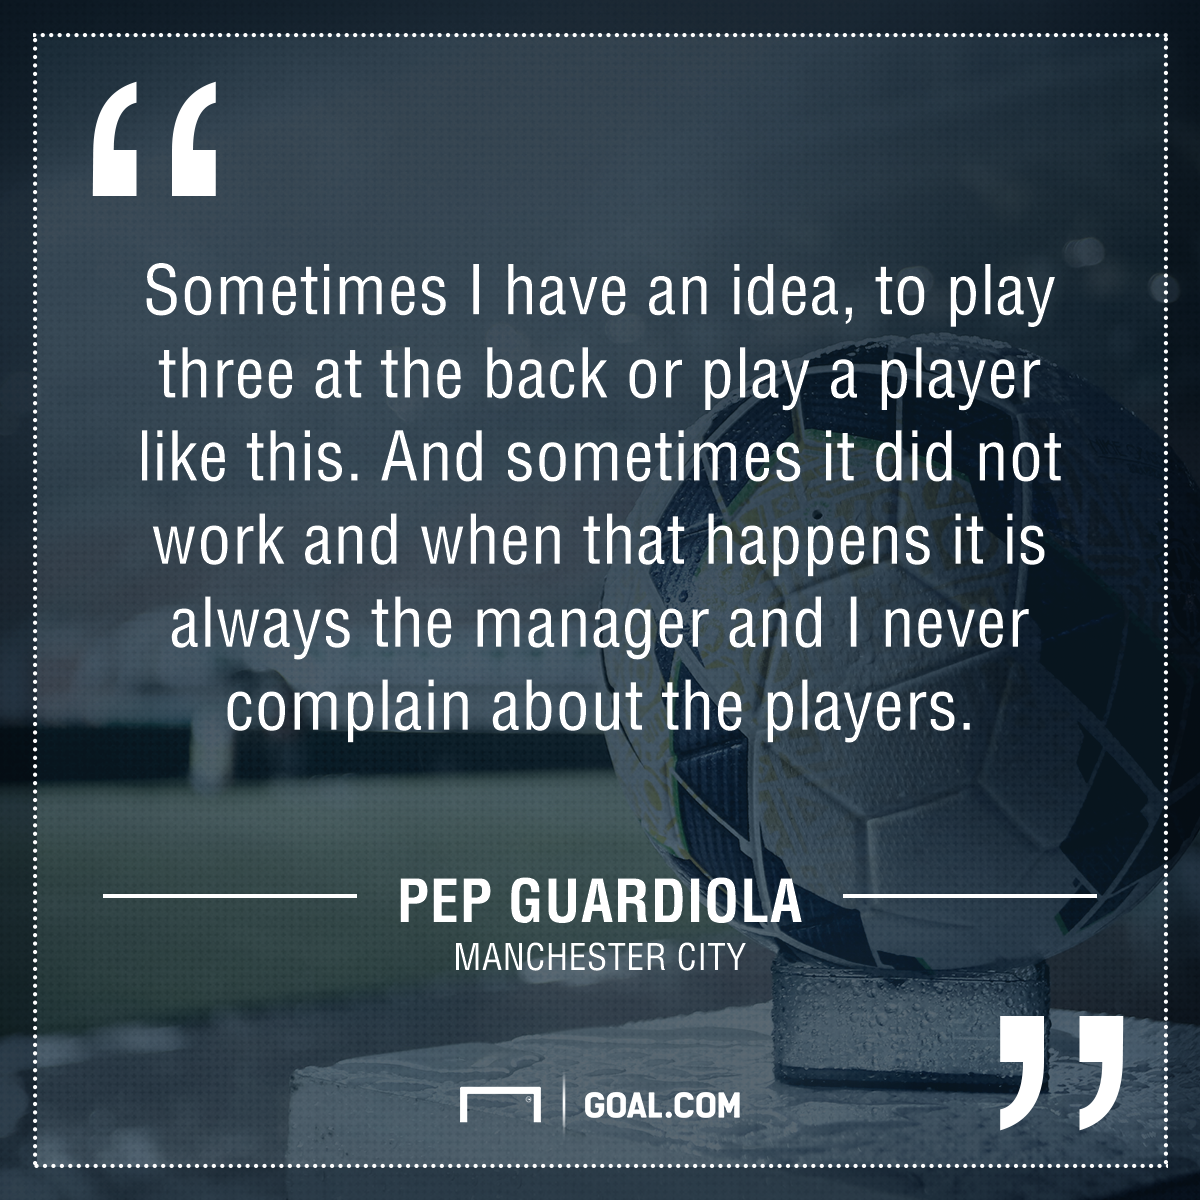 Guardiola quote mistake